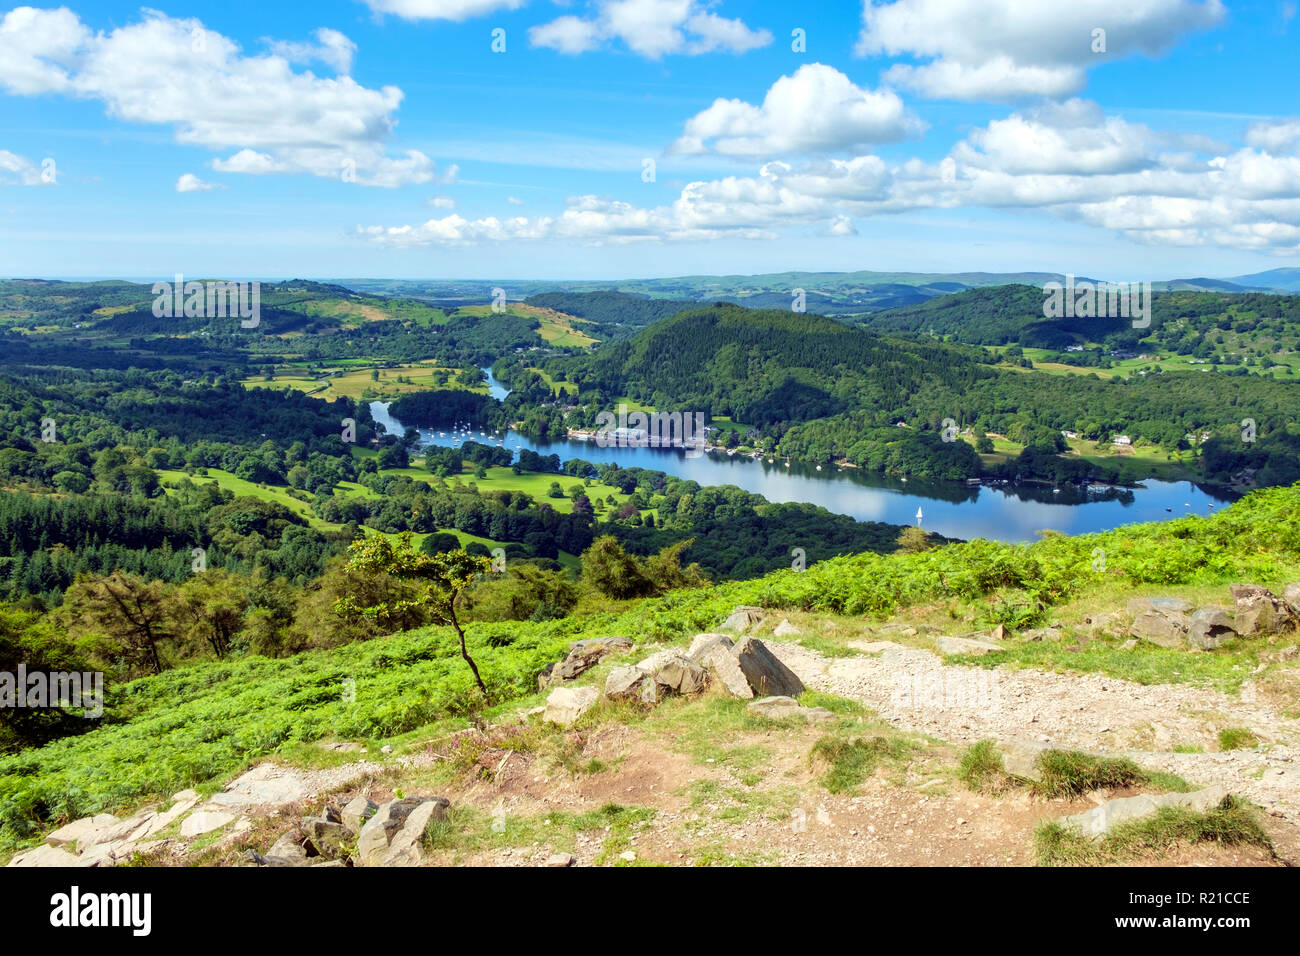 The view over south end of Lake Windermere from the path to Gummers How on a beautiful summer morning. Gummers How is a well known viewpoint in The Lake District, Cumbria, UK. - Stock Image